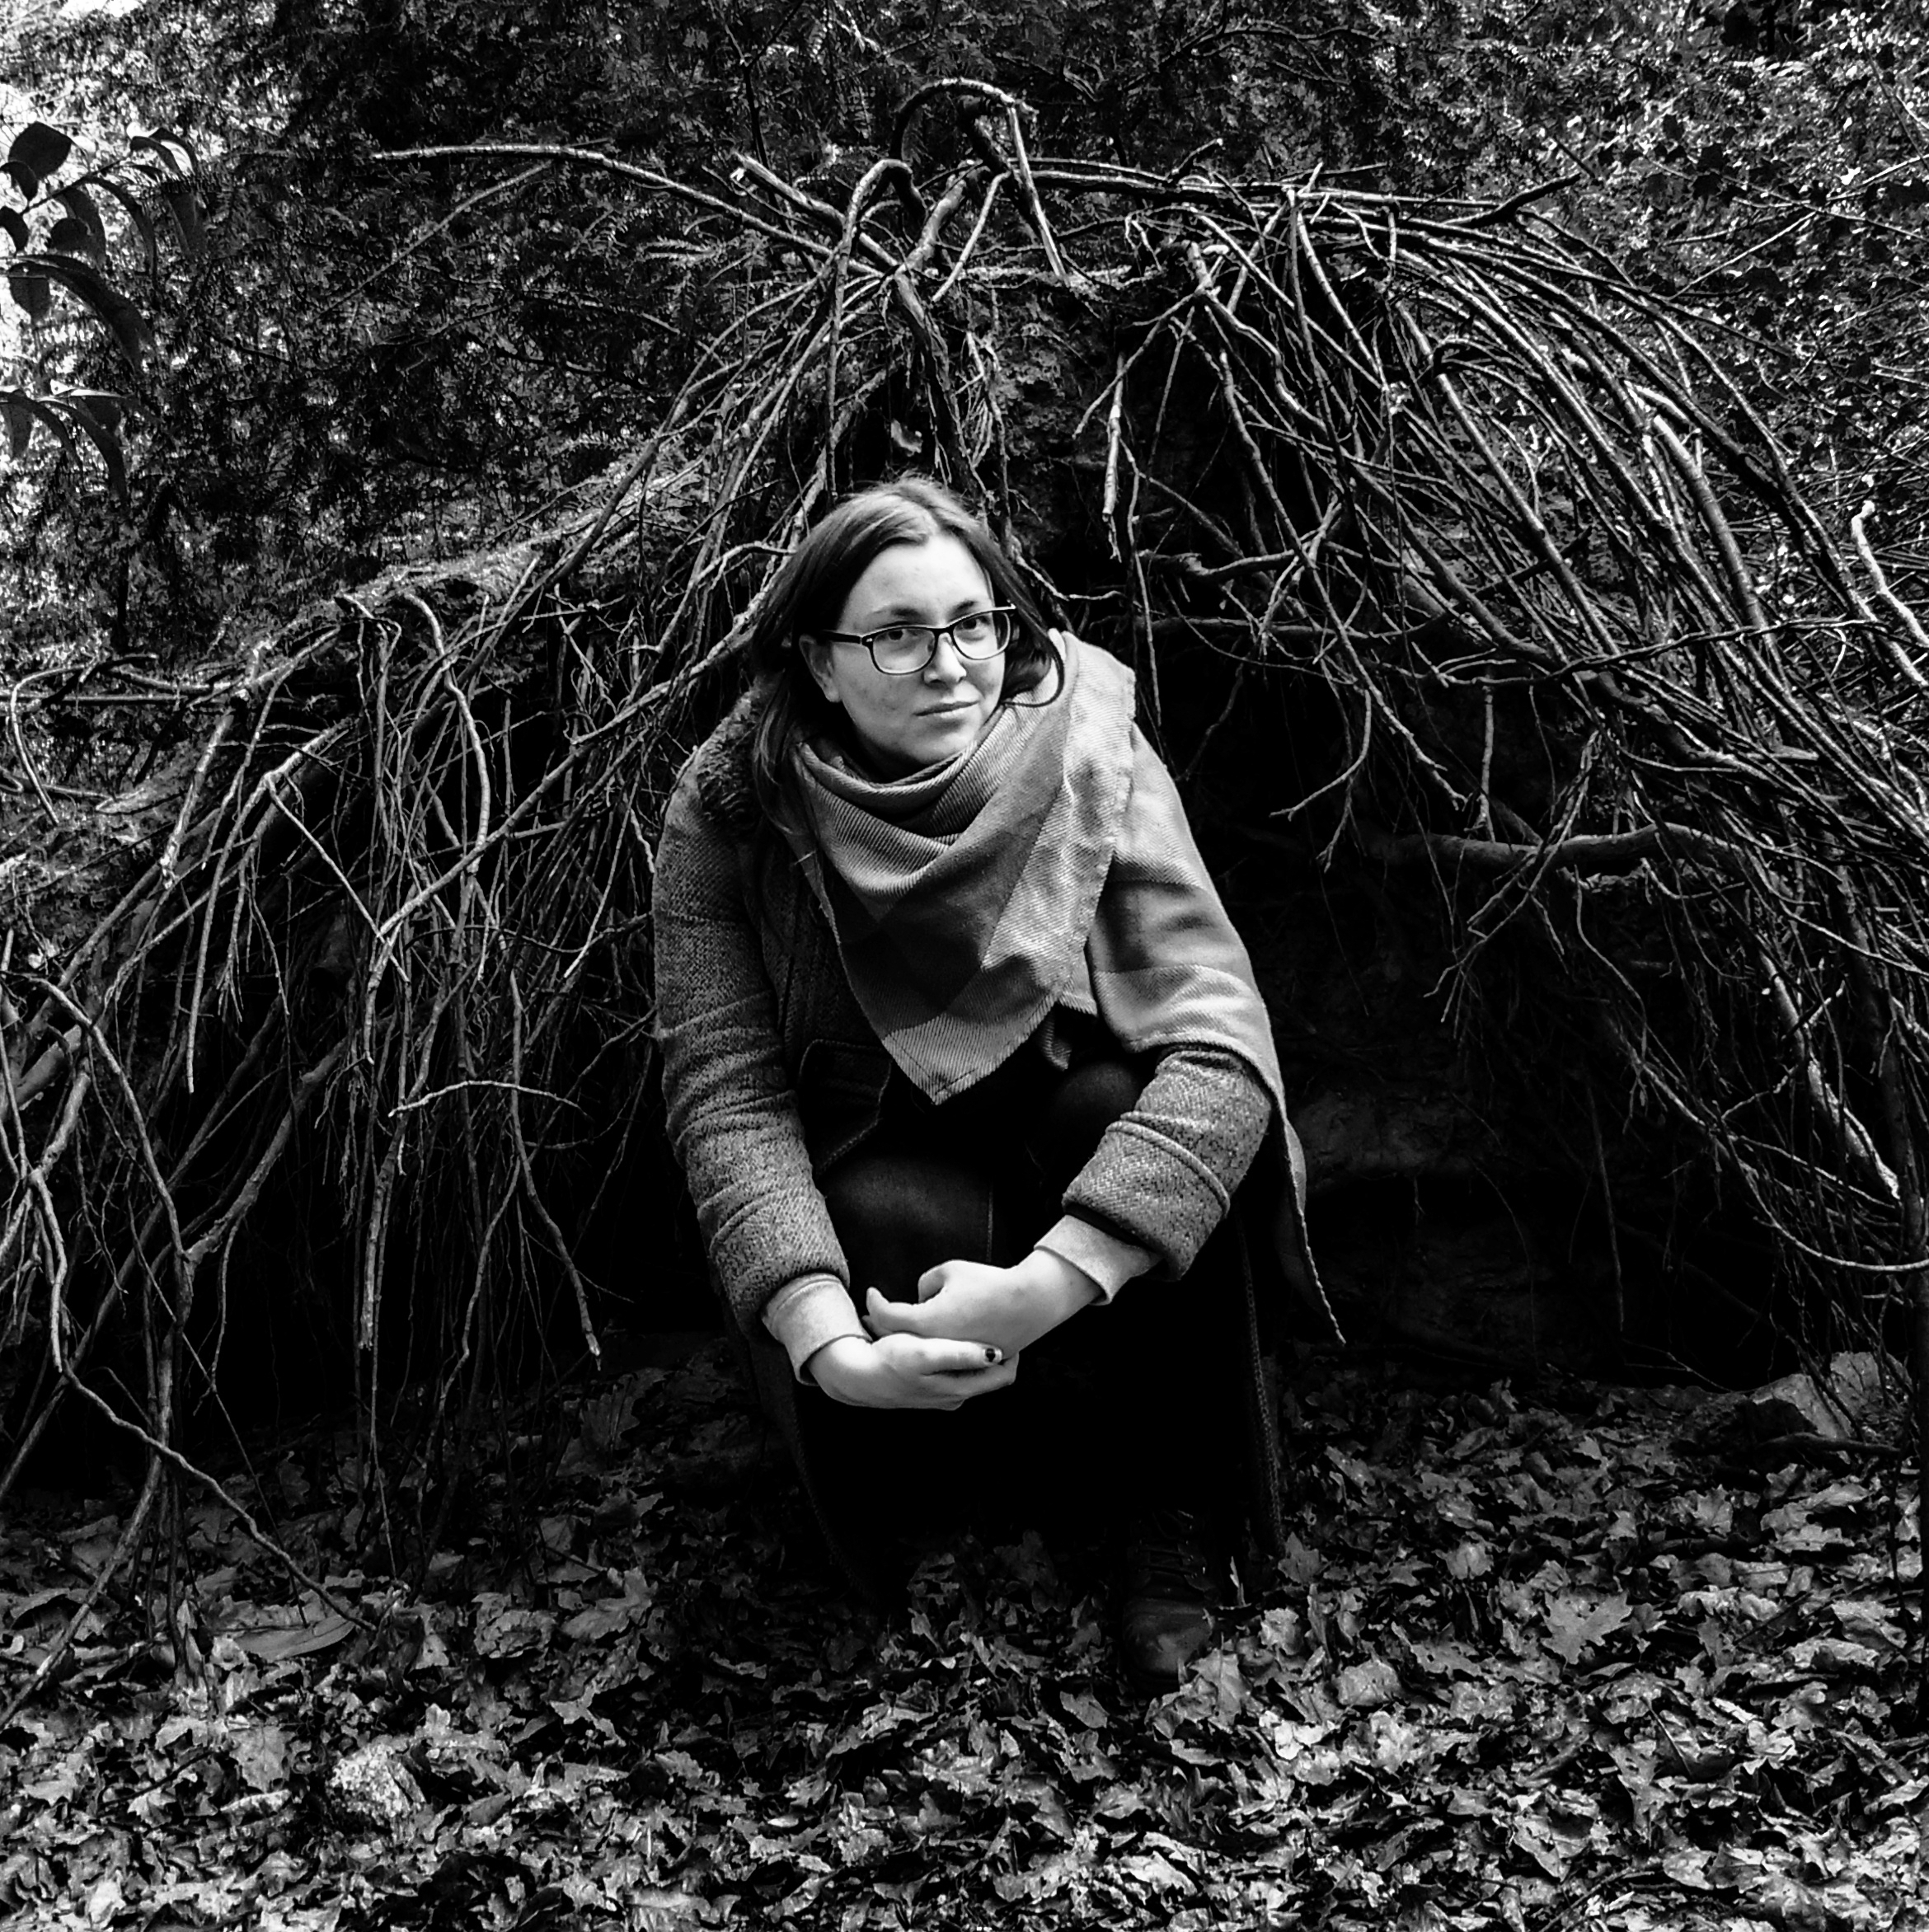 Dr Lee aka Talkingimo in the roots of a tree in Sydenham Hill Woods